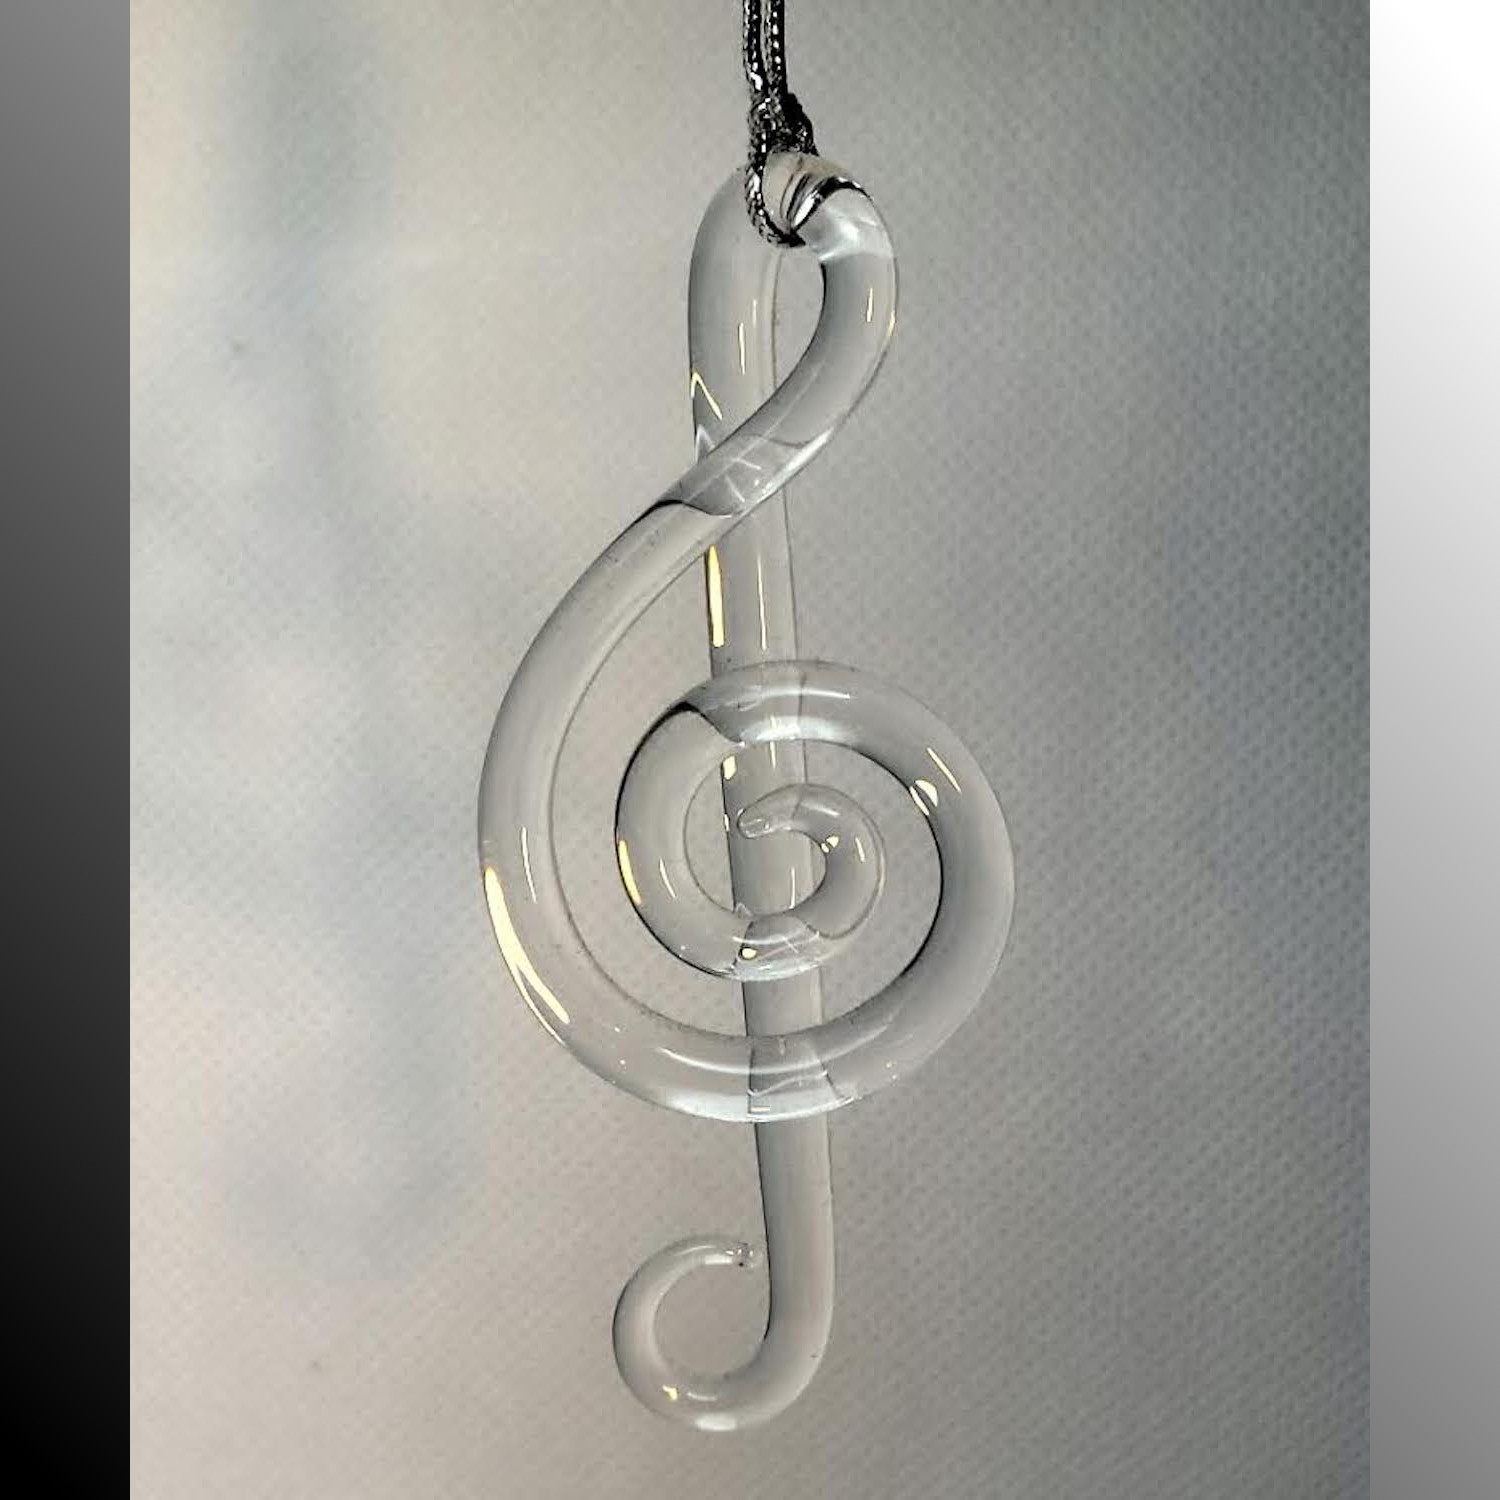 Glass Treble Clef Decoration